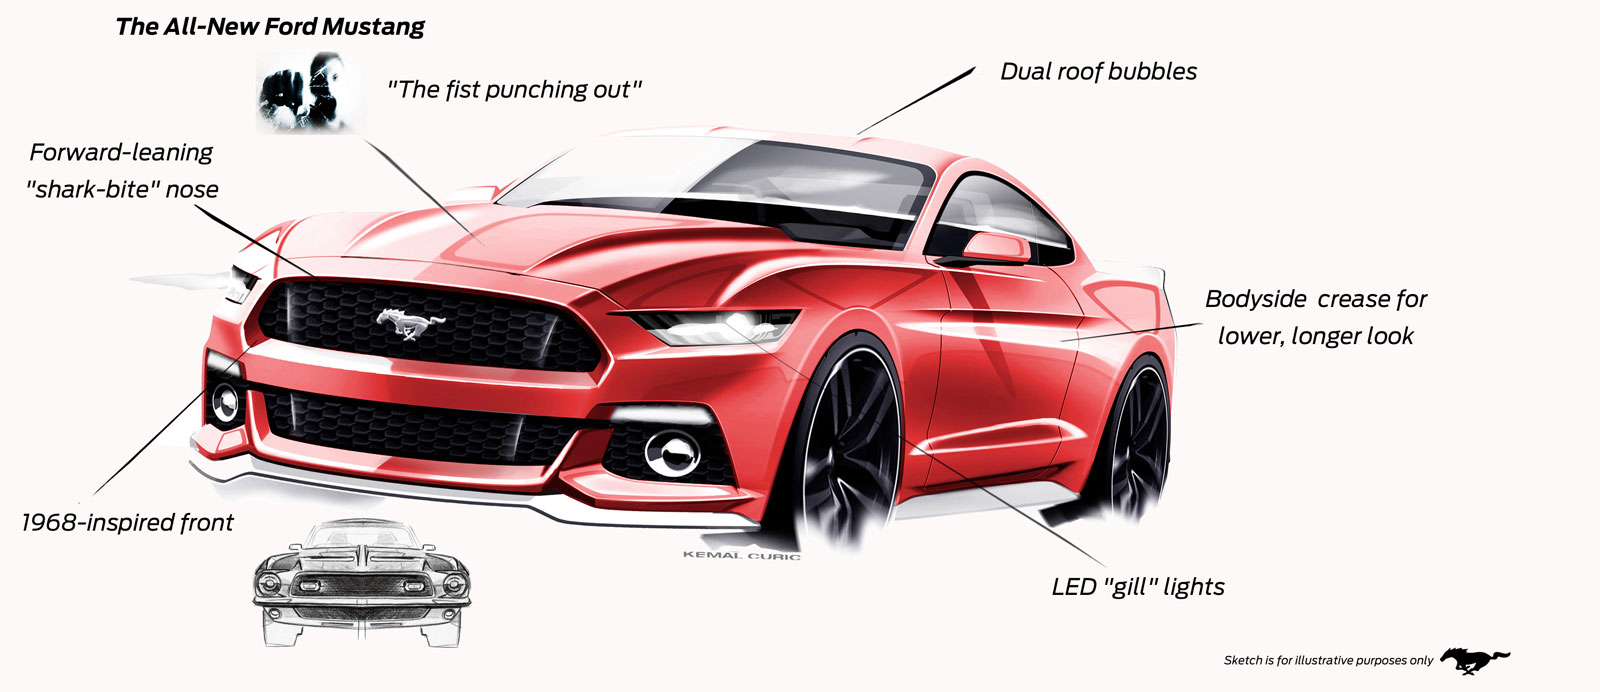 Ford mustang exterior design elements car body design for Exterior car design